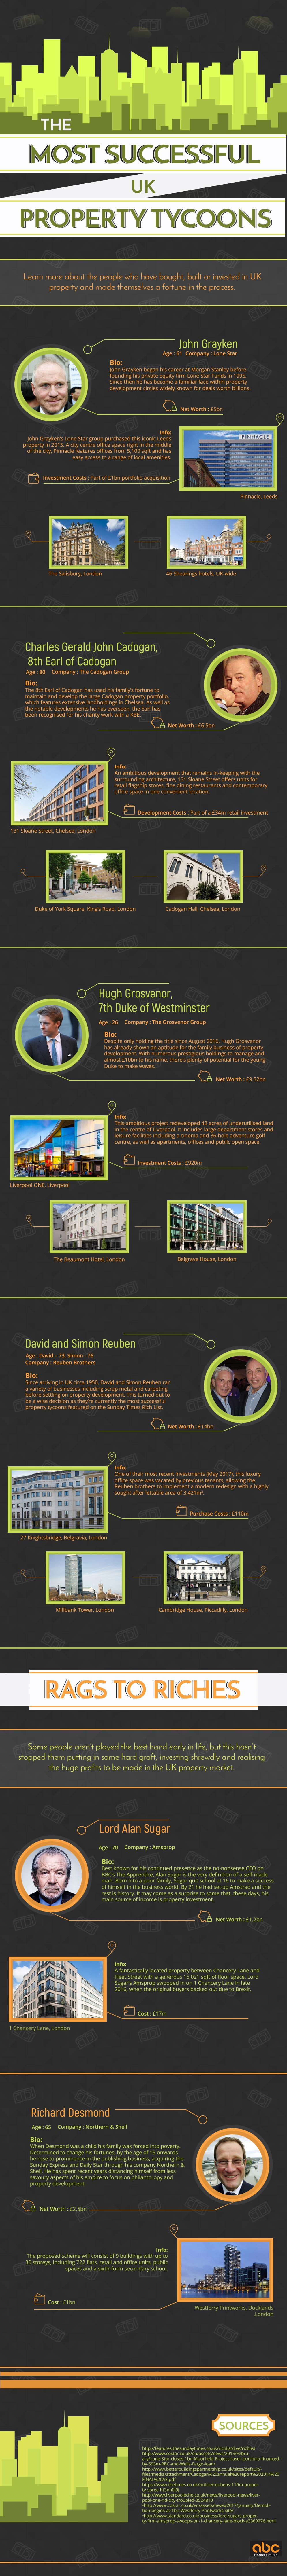 UK's Most Successful Property Tycoons